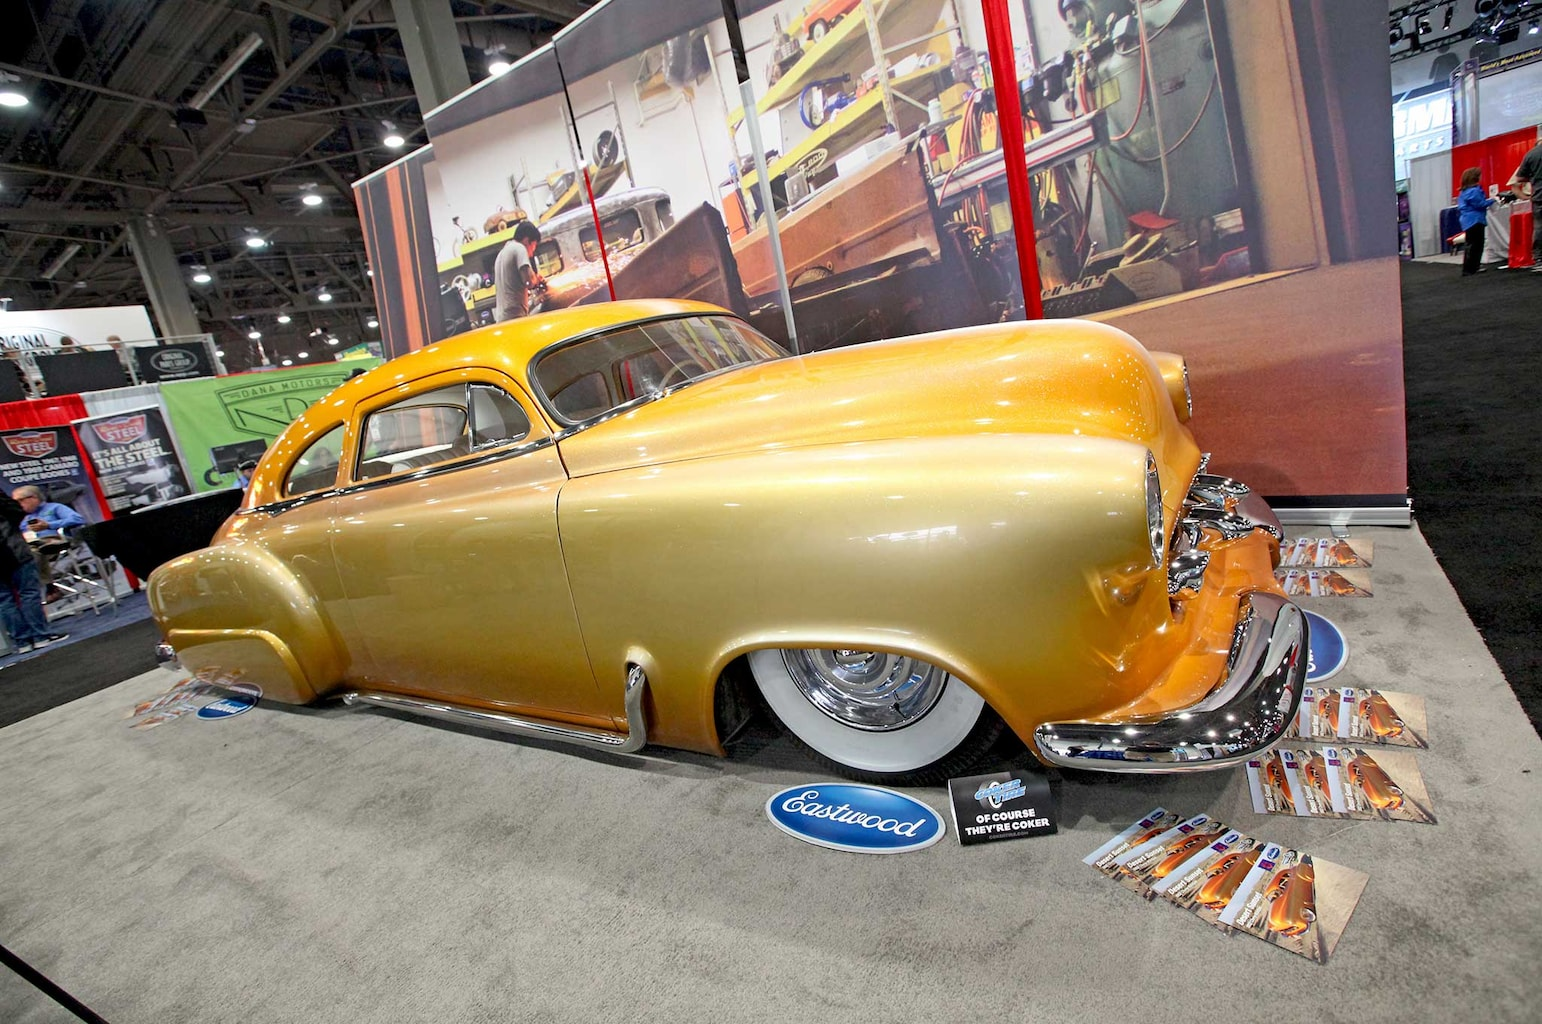 014 favorite 5 at sema 2015 gene winfield 1952 chevy kustom